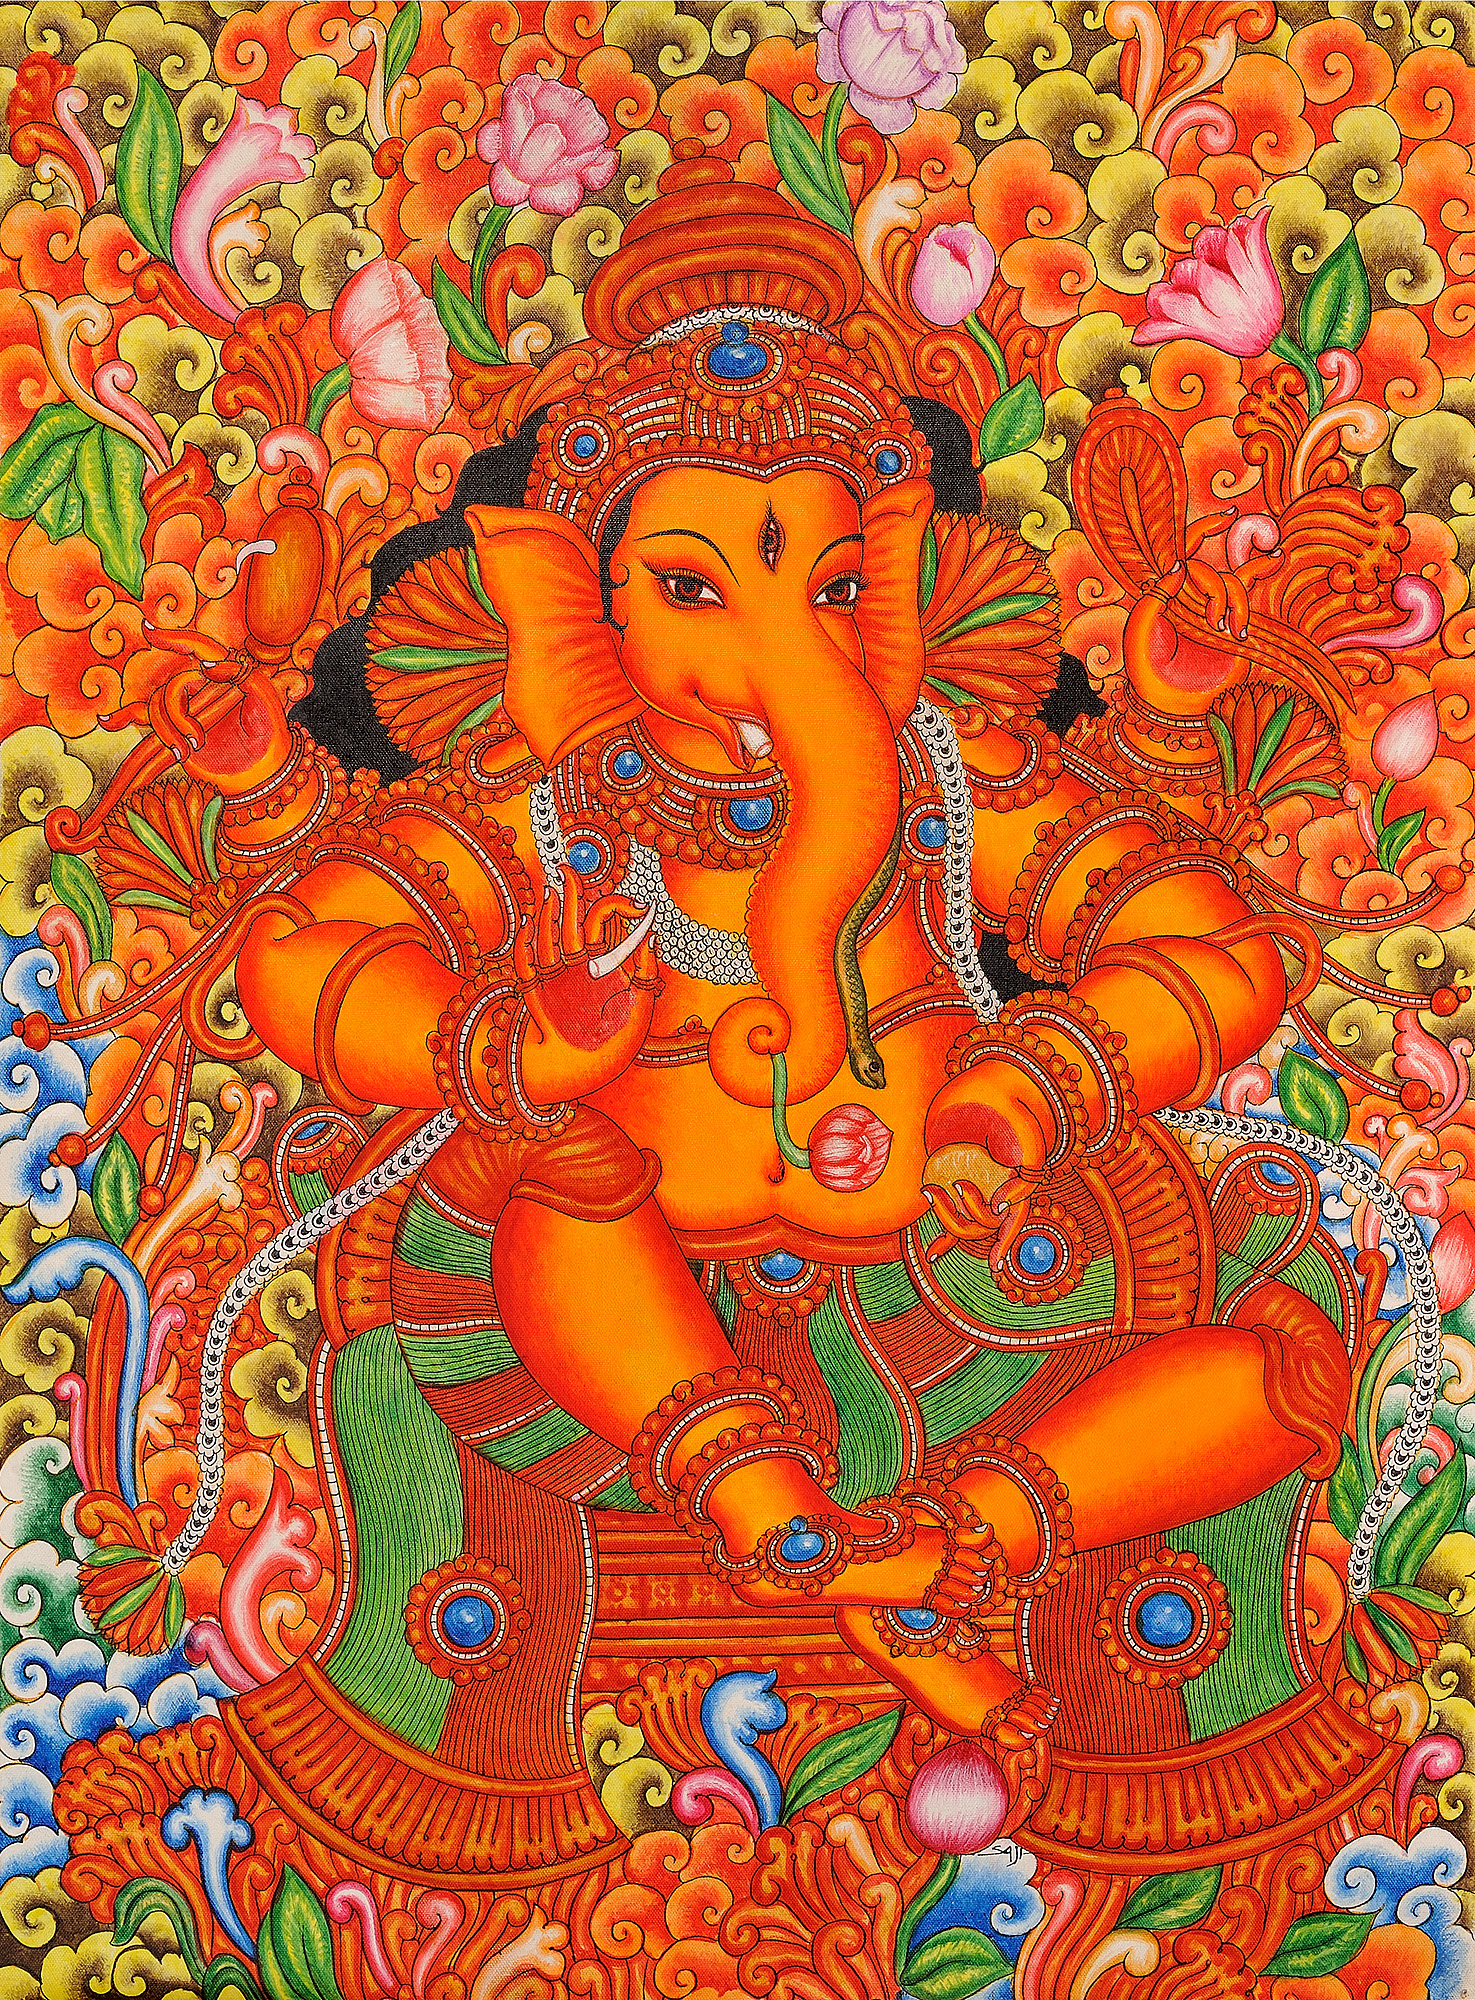 Lord ganesha in the style of mattanchery palace murals for Art mural painting